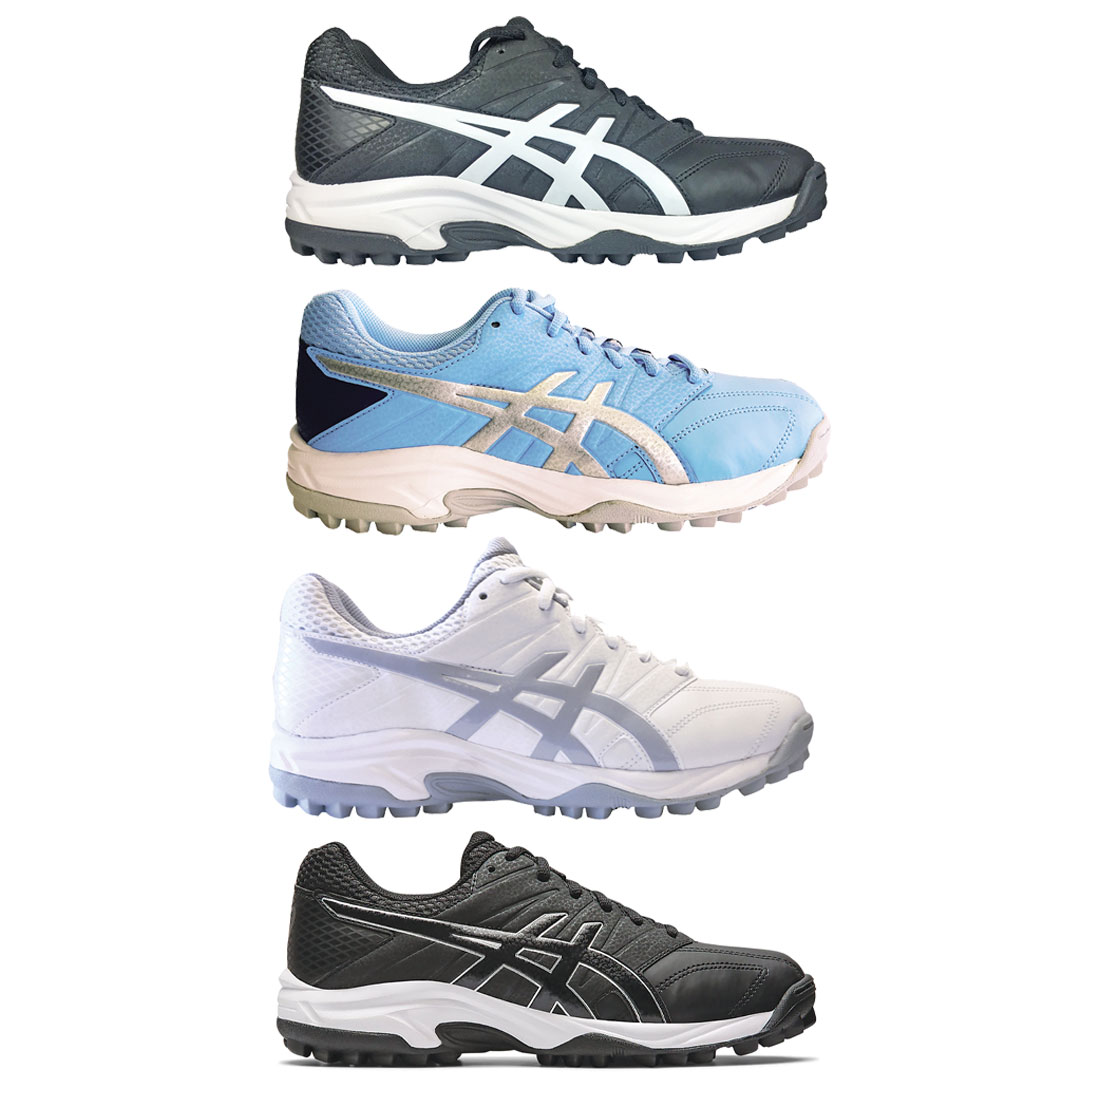 Asics Gel-Lethal MP7 Turf Shoe - longstreth.com a613c070d9ab